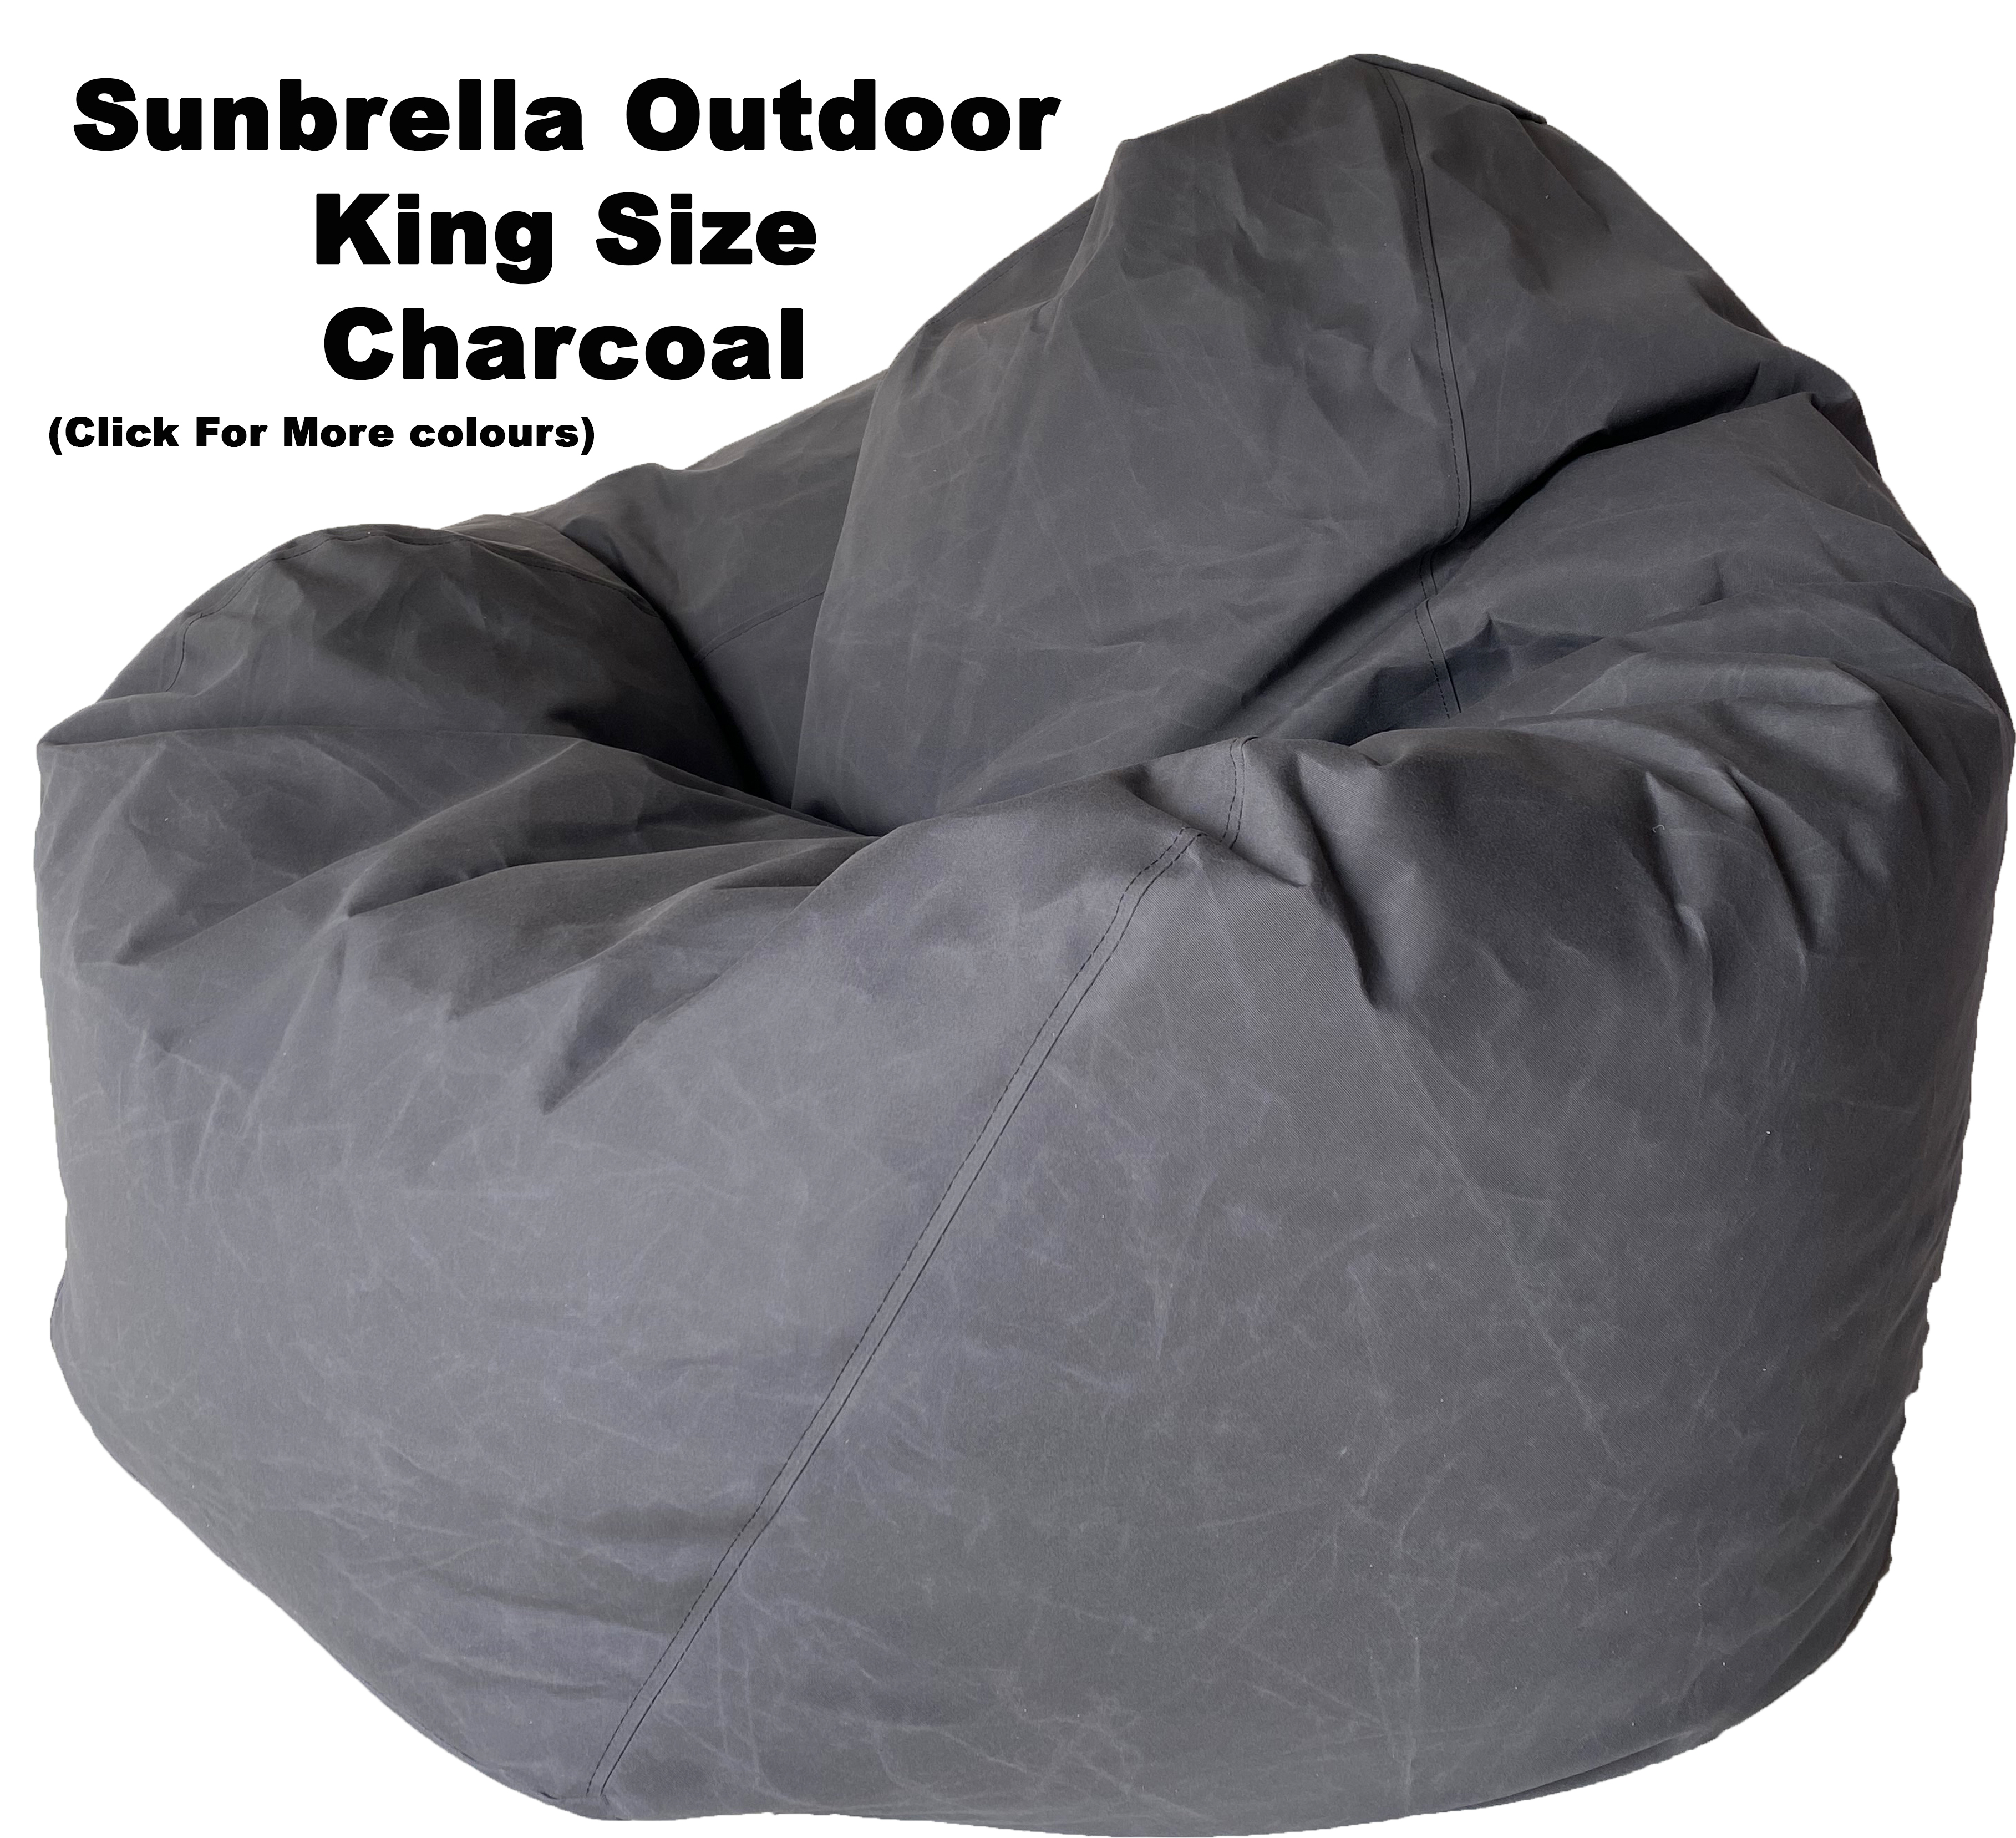 Sunbrella Outdoor King Size Bean Bag In Assorted Colours....